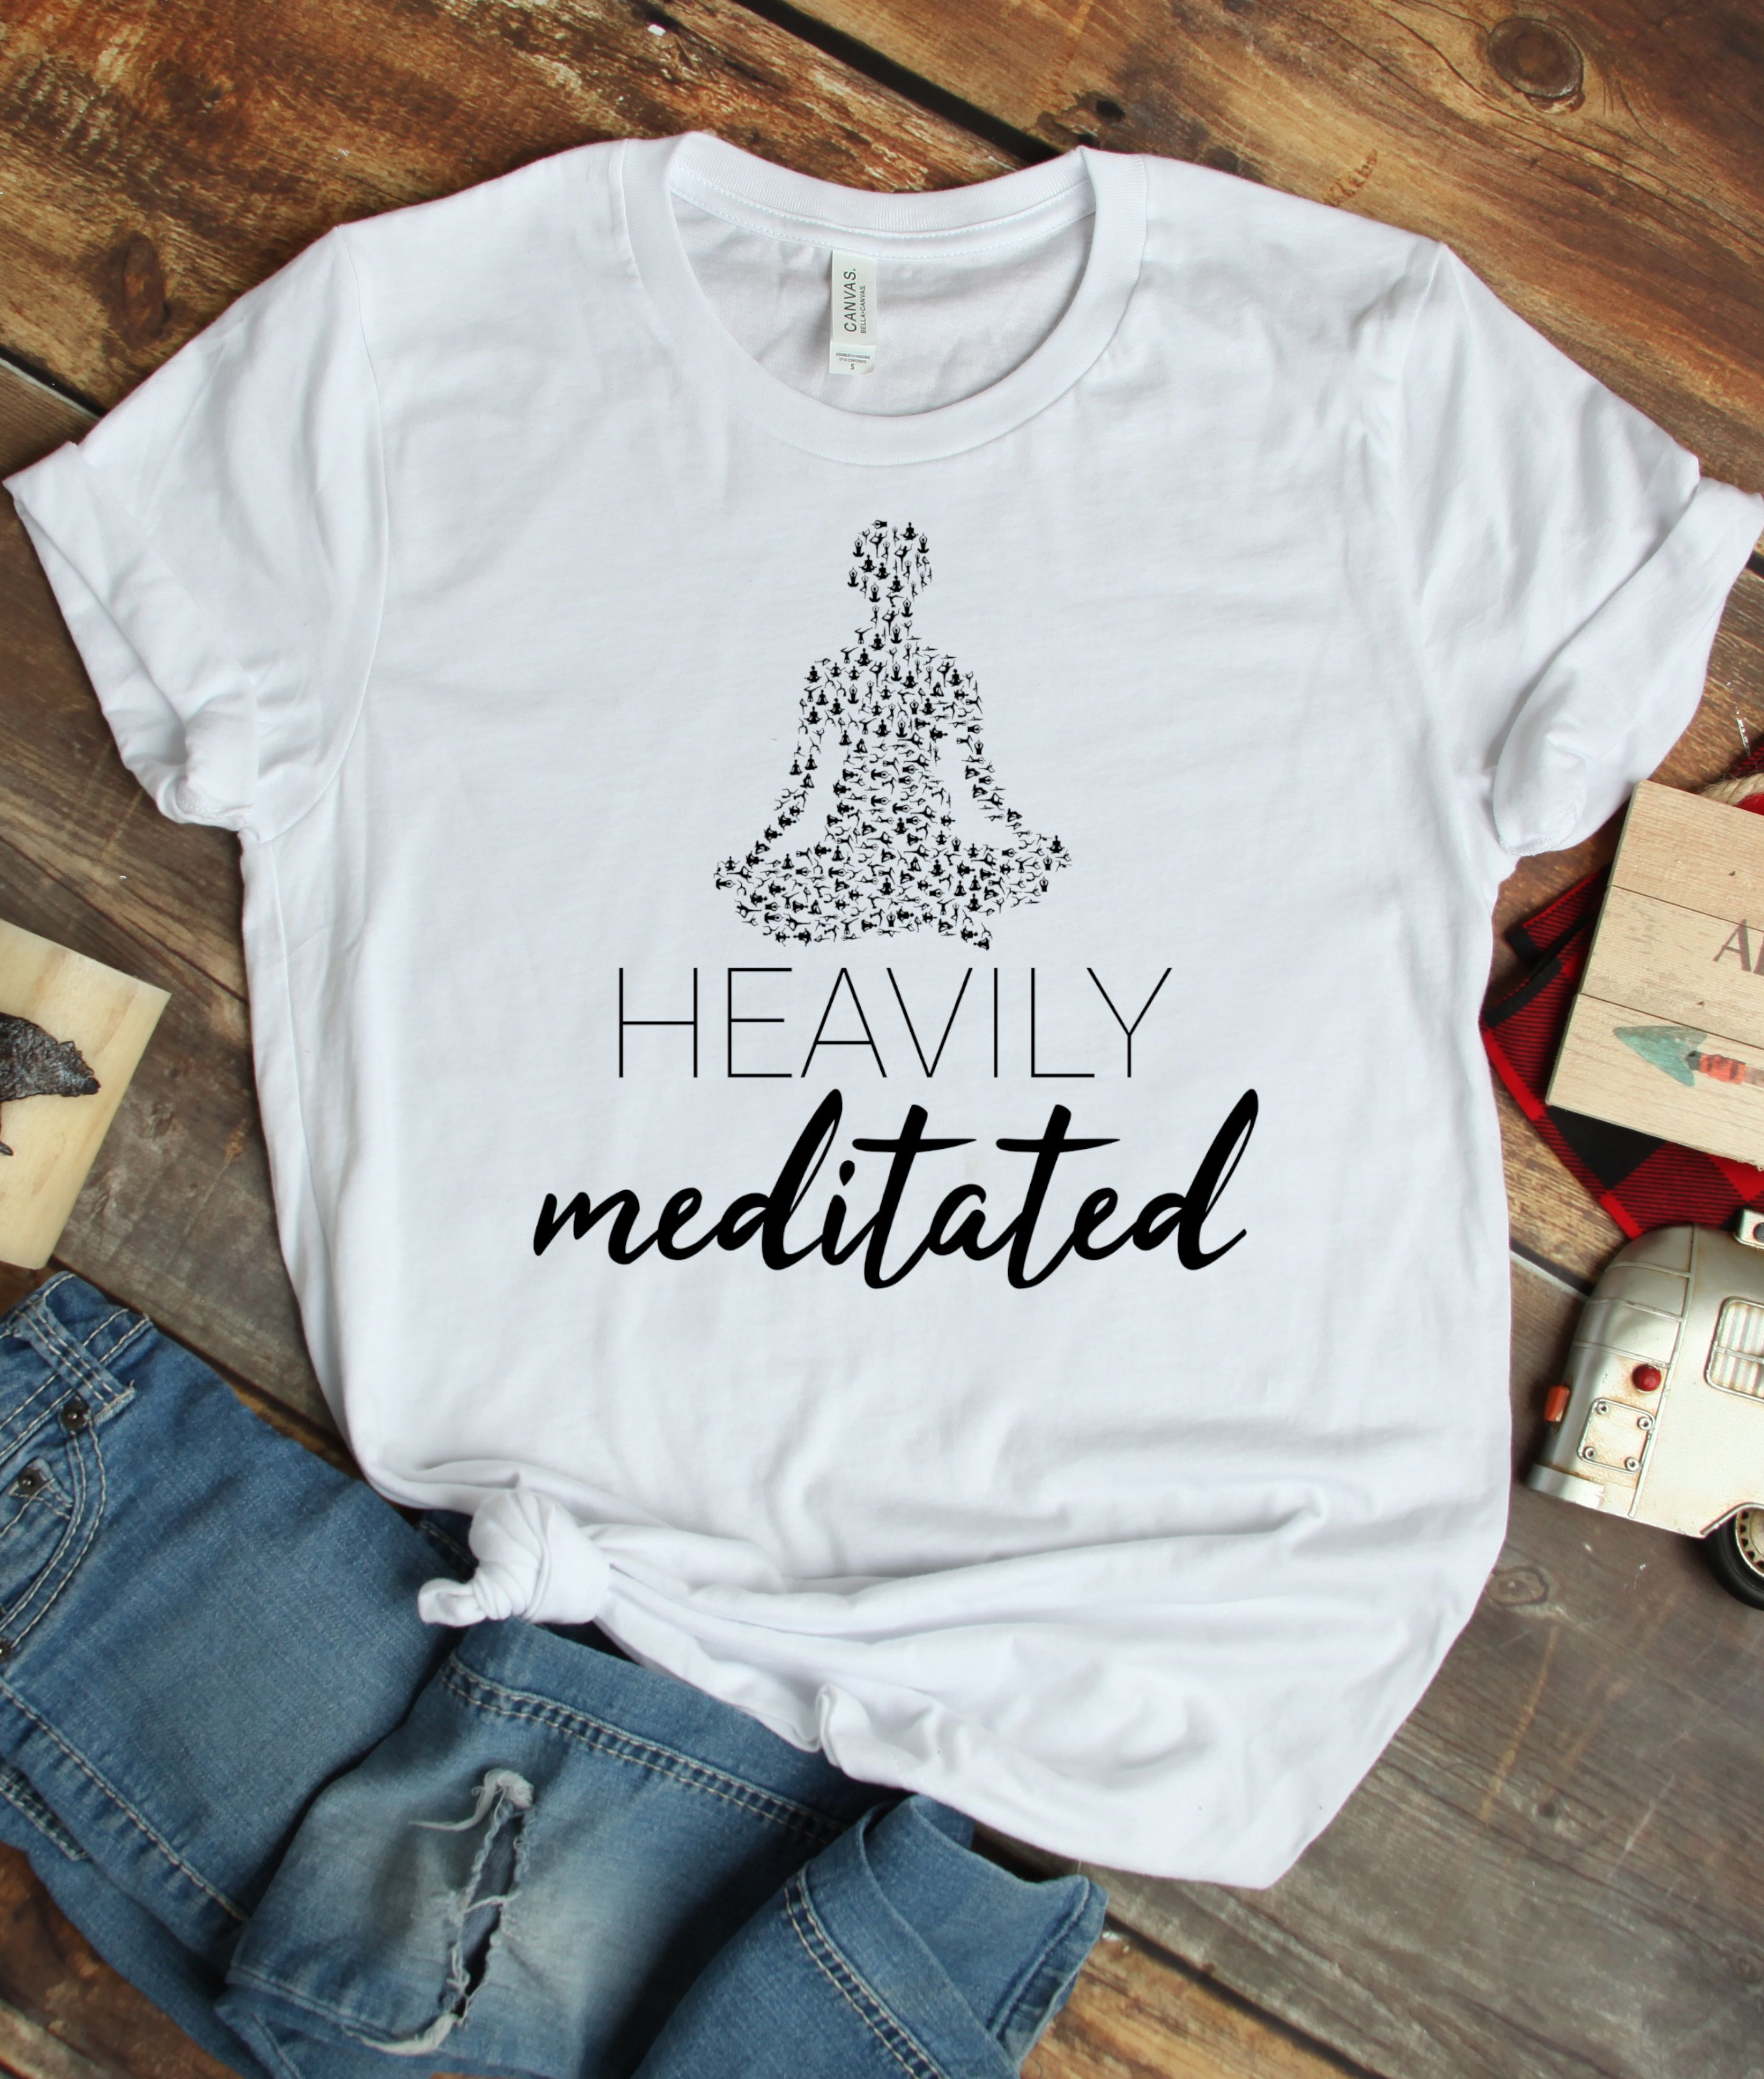 Heavily Meditated Unisex Short Sleeve Tee Funny Abstract Etsy T Shirts With Sayings Shirts Shirts With Sayings